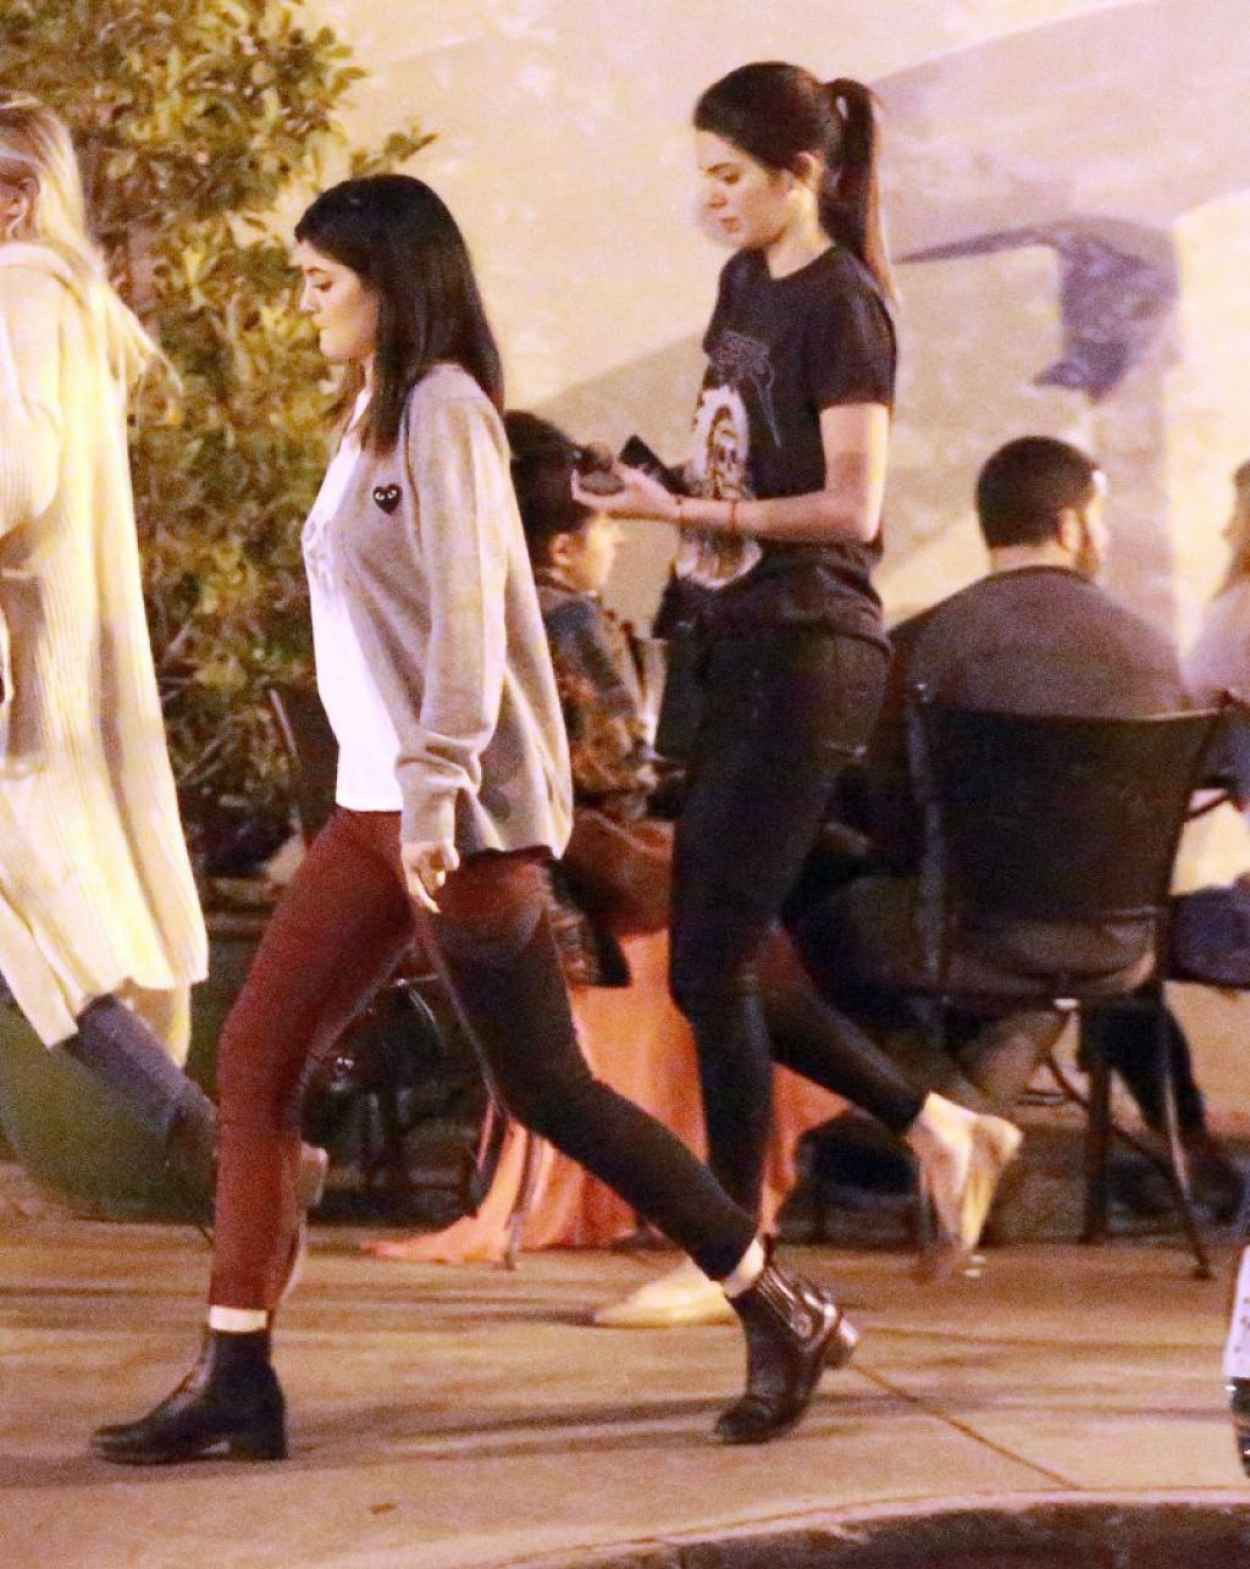 Kendall & Kylie Jenner Street Style - Leaving Urth Caffe in West Hollywood, January 2015-1